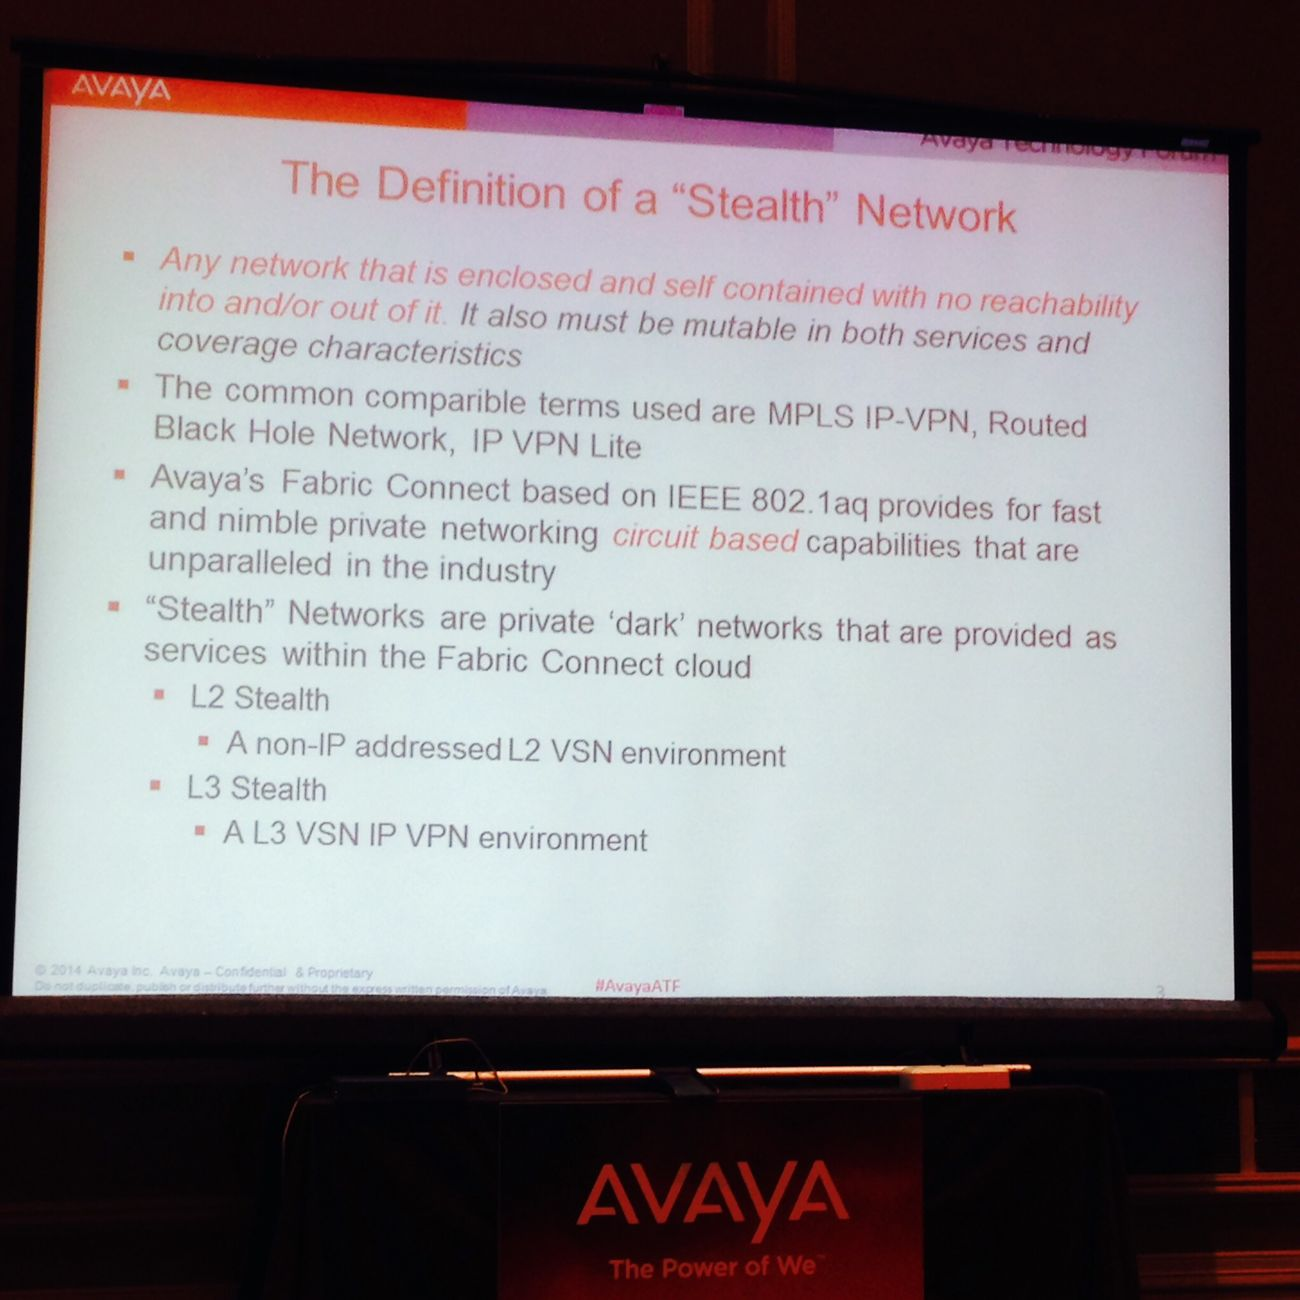 Avaya Spbm Stealth Networks Pci-dss This is just an example how to build stealth networks in seconds on SPBm-enabled networks based on Avaya Fabric Connect without a need of MW's.